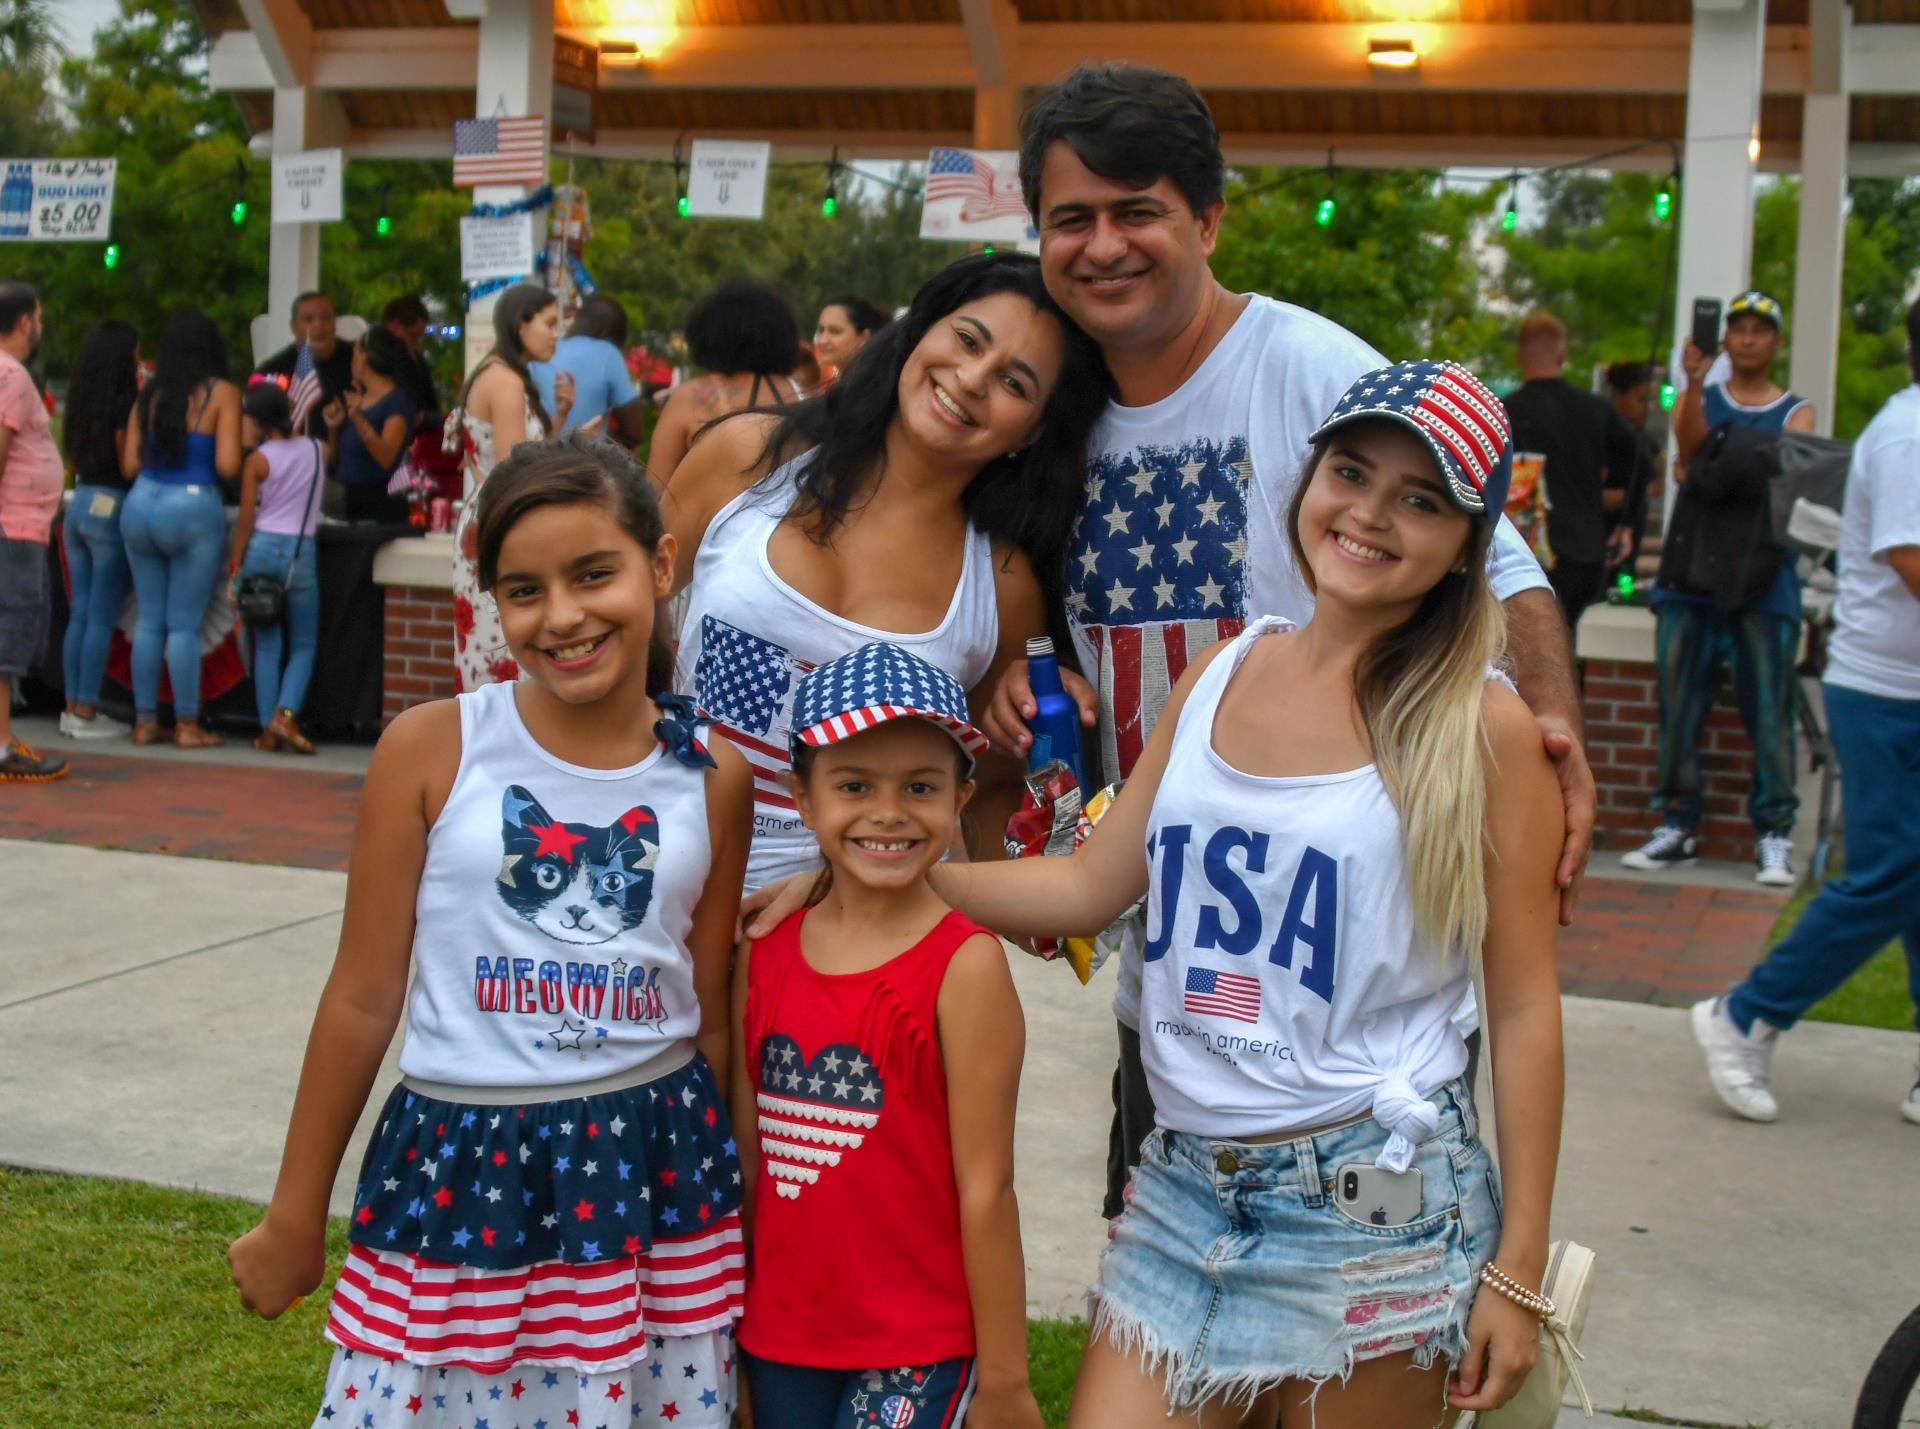 This is a photo of a family dressed in red, white and blue clothing celebrating the 2019 Monumental 4th of July.